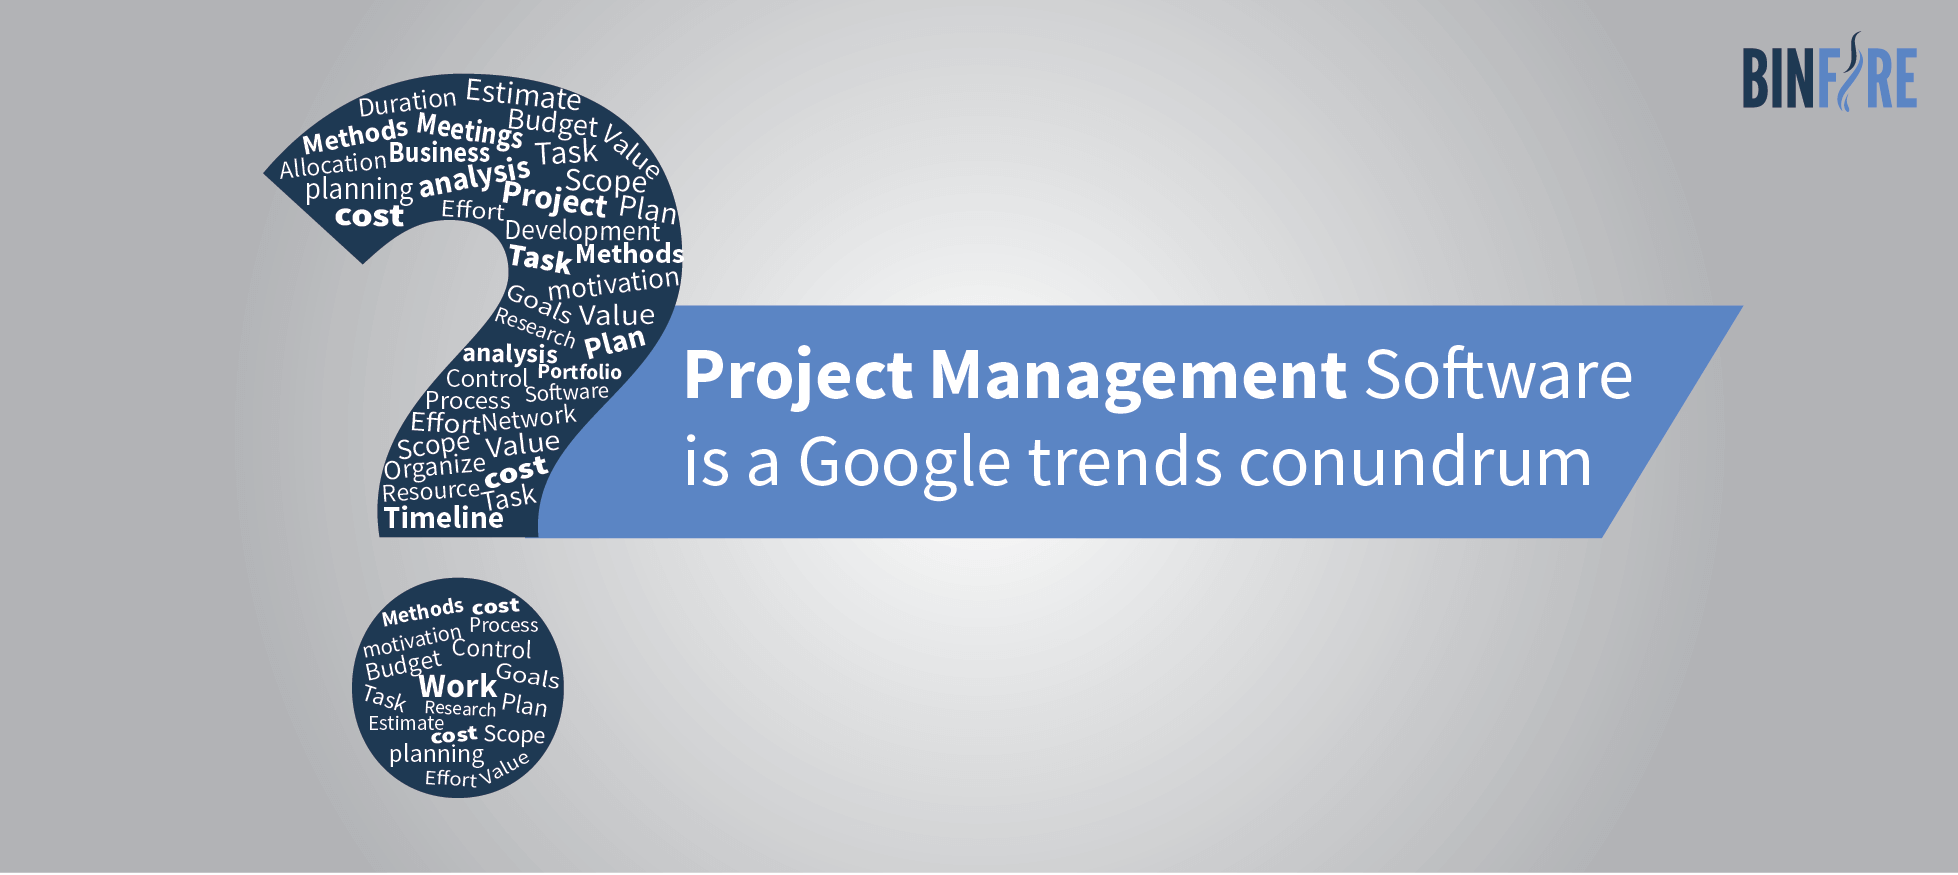 https://www.binfire.com/blog/2016/02/project-management-software-is-a-google-trends-conundrum/